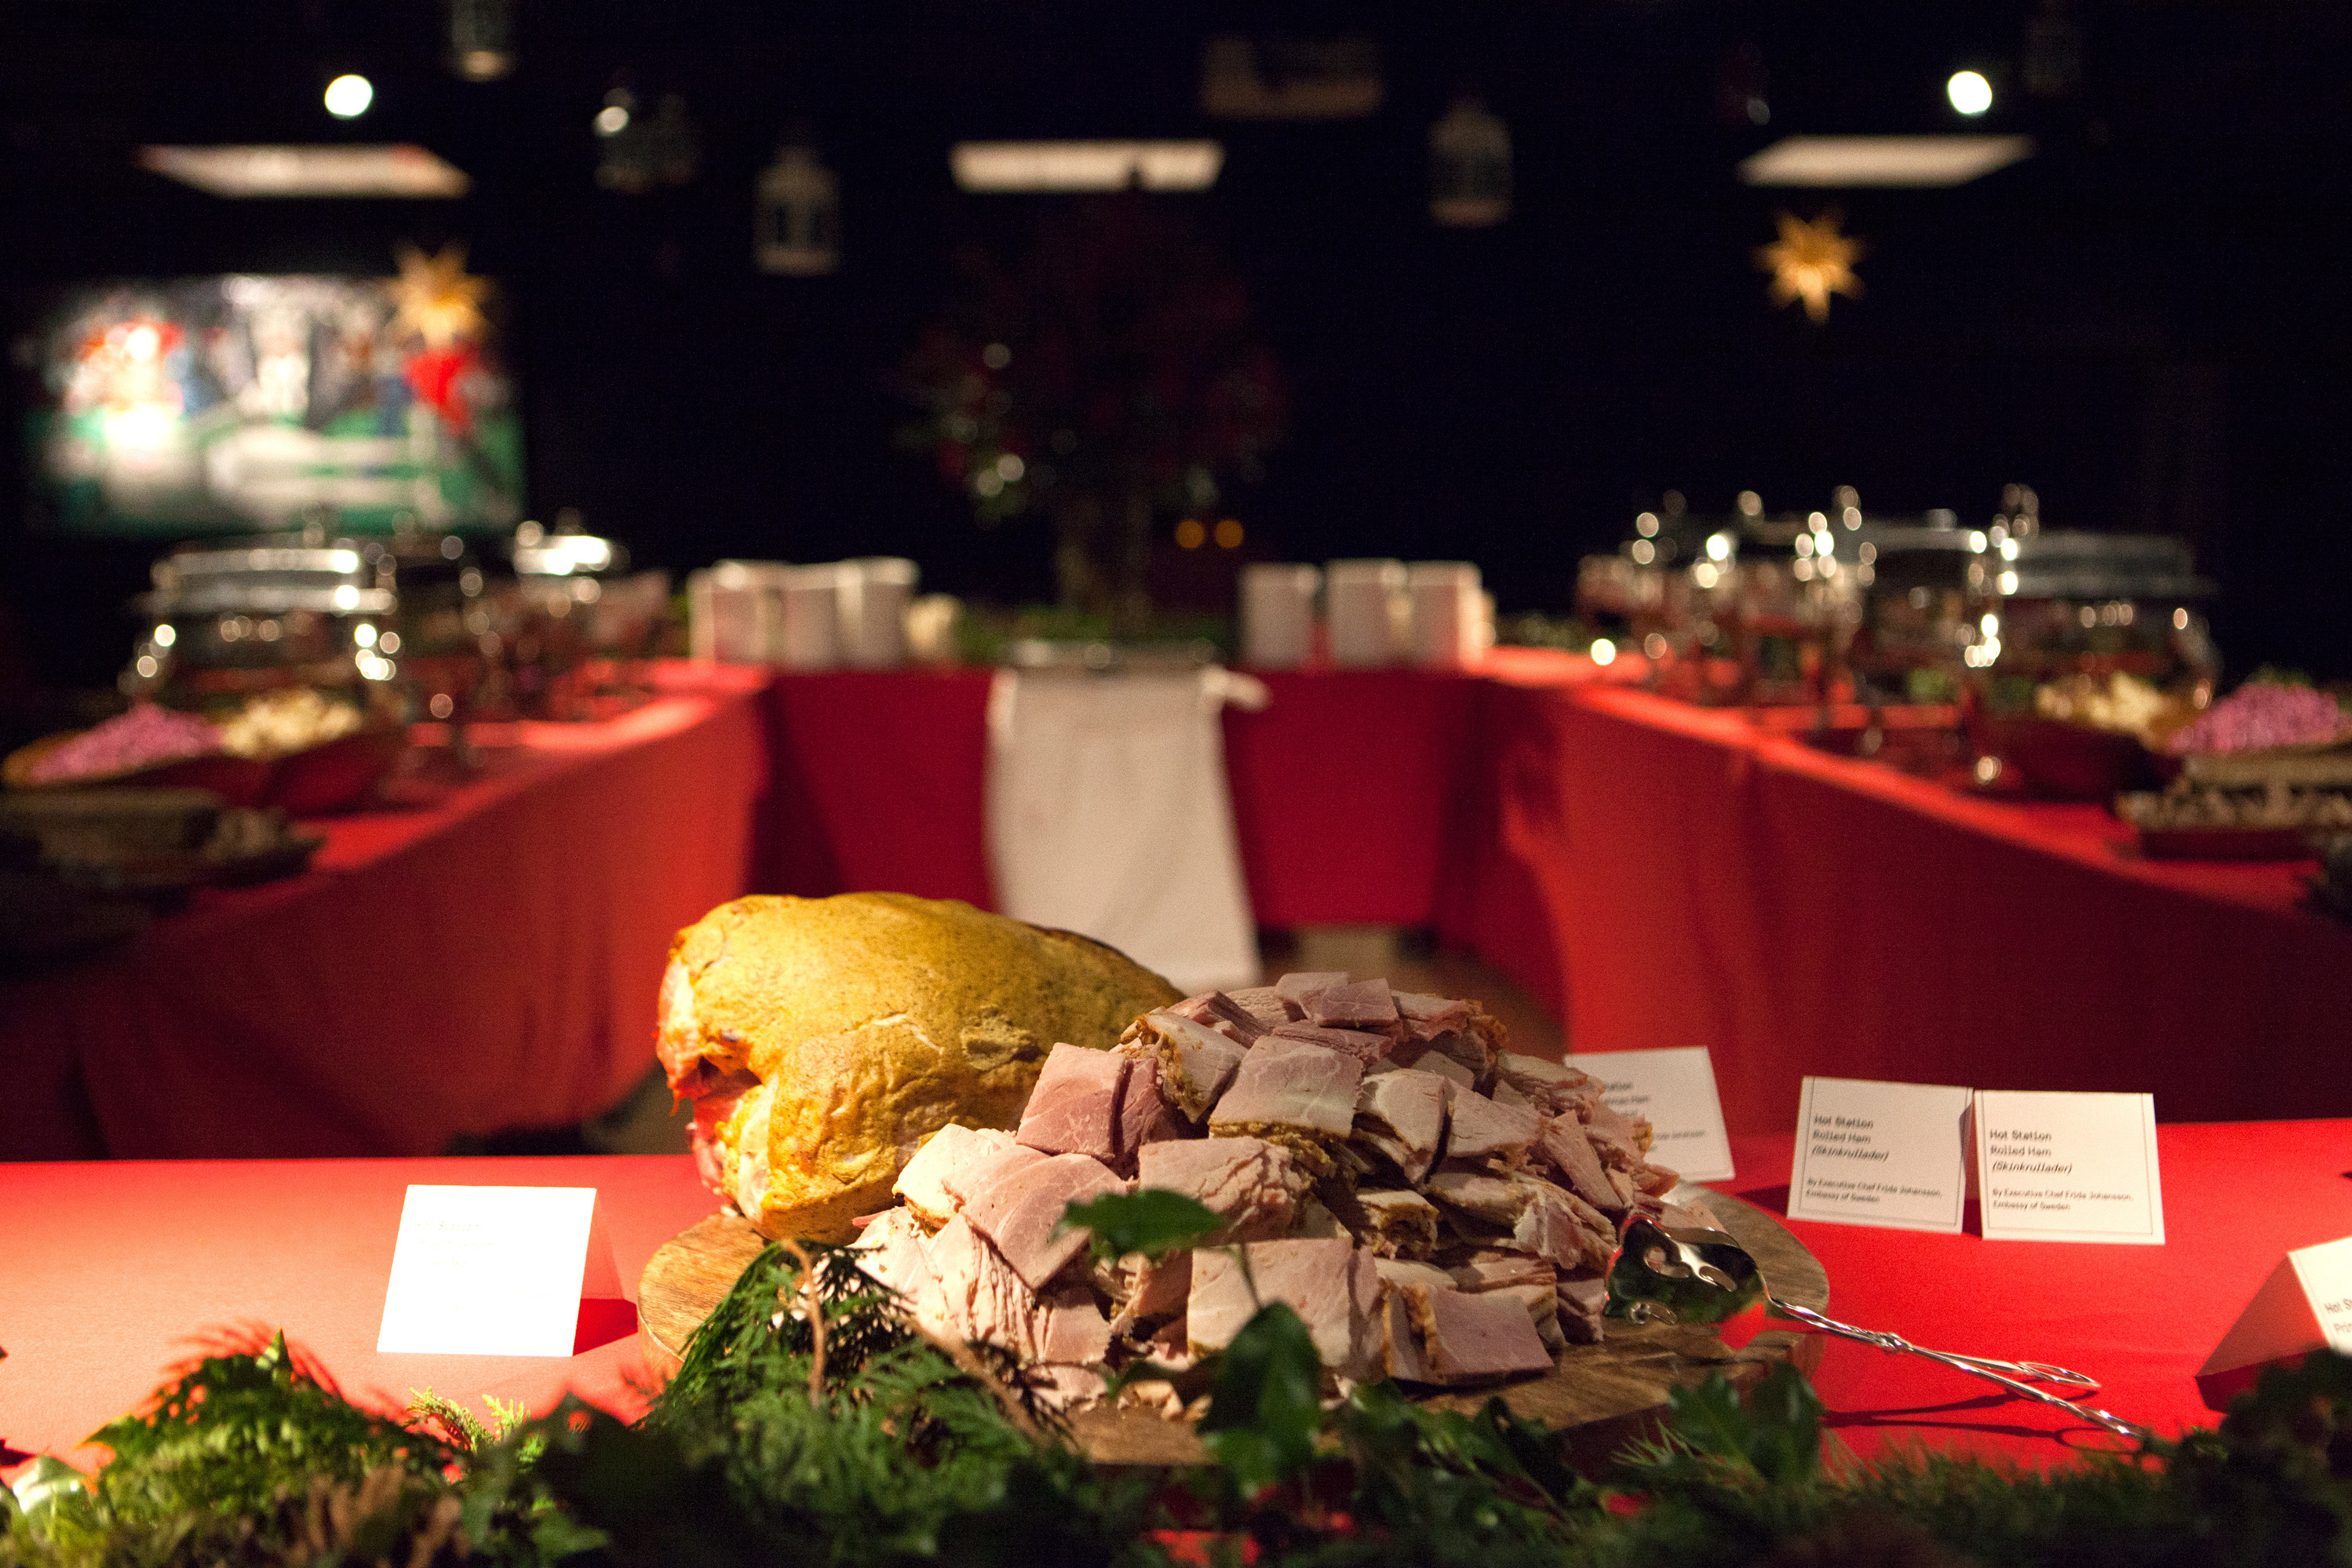 """Ham is often considered a star of the julbord, seen here at the Swedish embassy. Aquavit chef Emma Bengtsson says as a child, she loved her mother's Christmas ham: It was """"really, really good. Other people would say it's dry as hell and overcooked, but that's what I grew up with. I can't eat it any other way."""""""